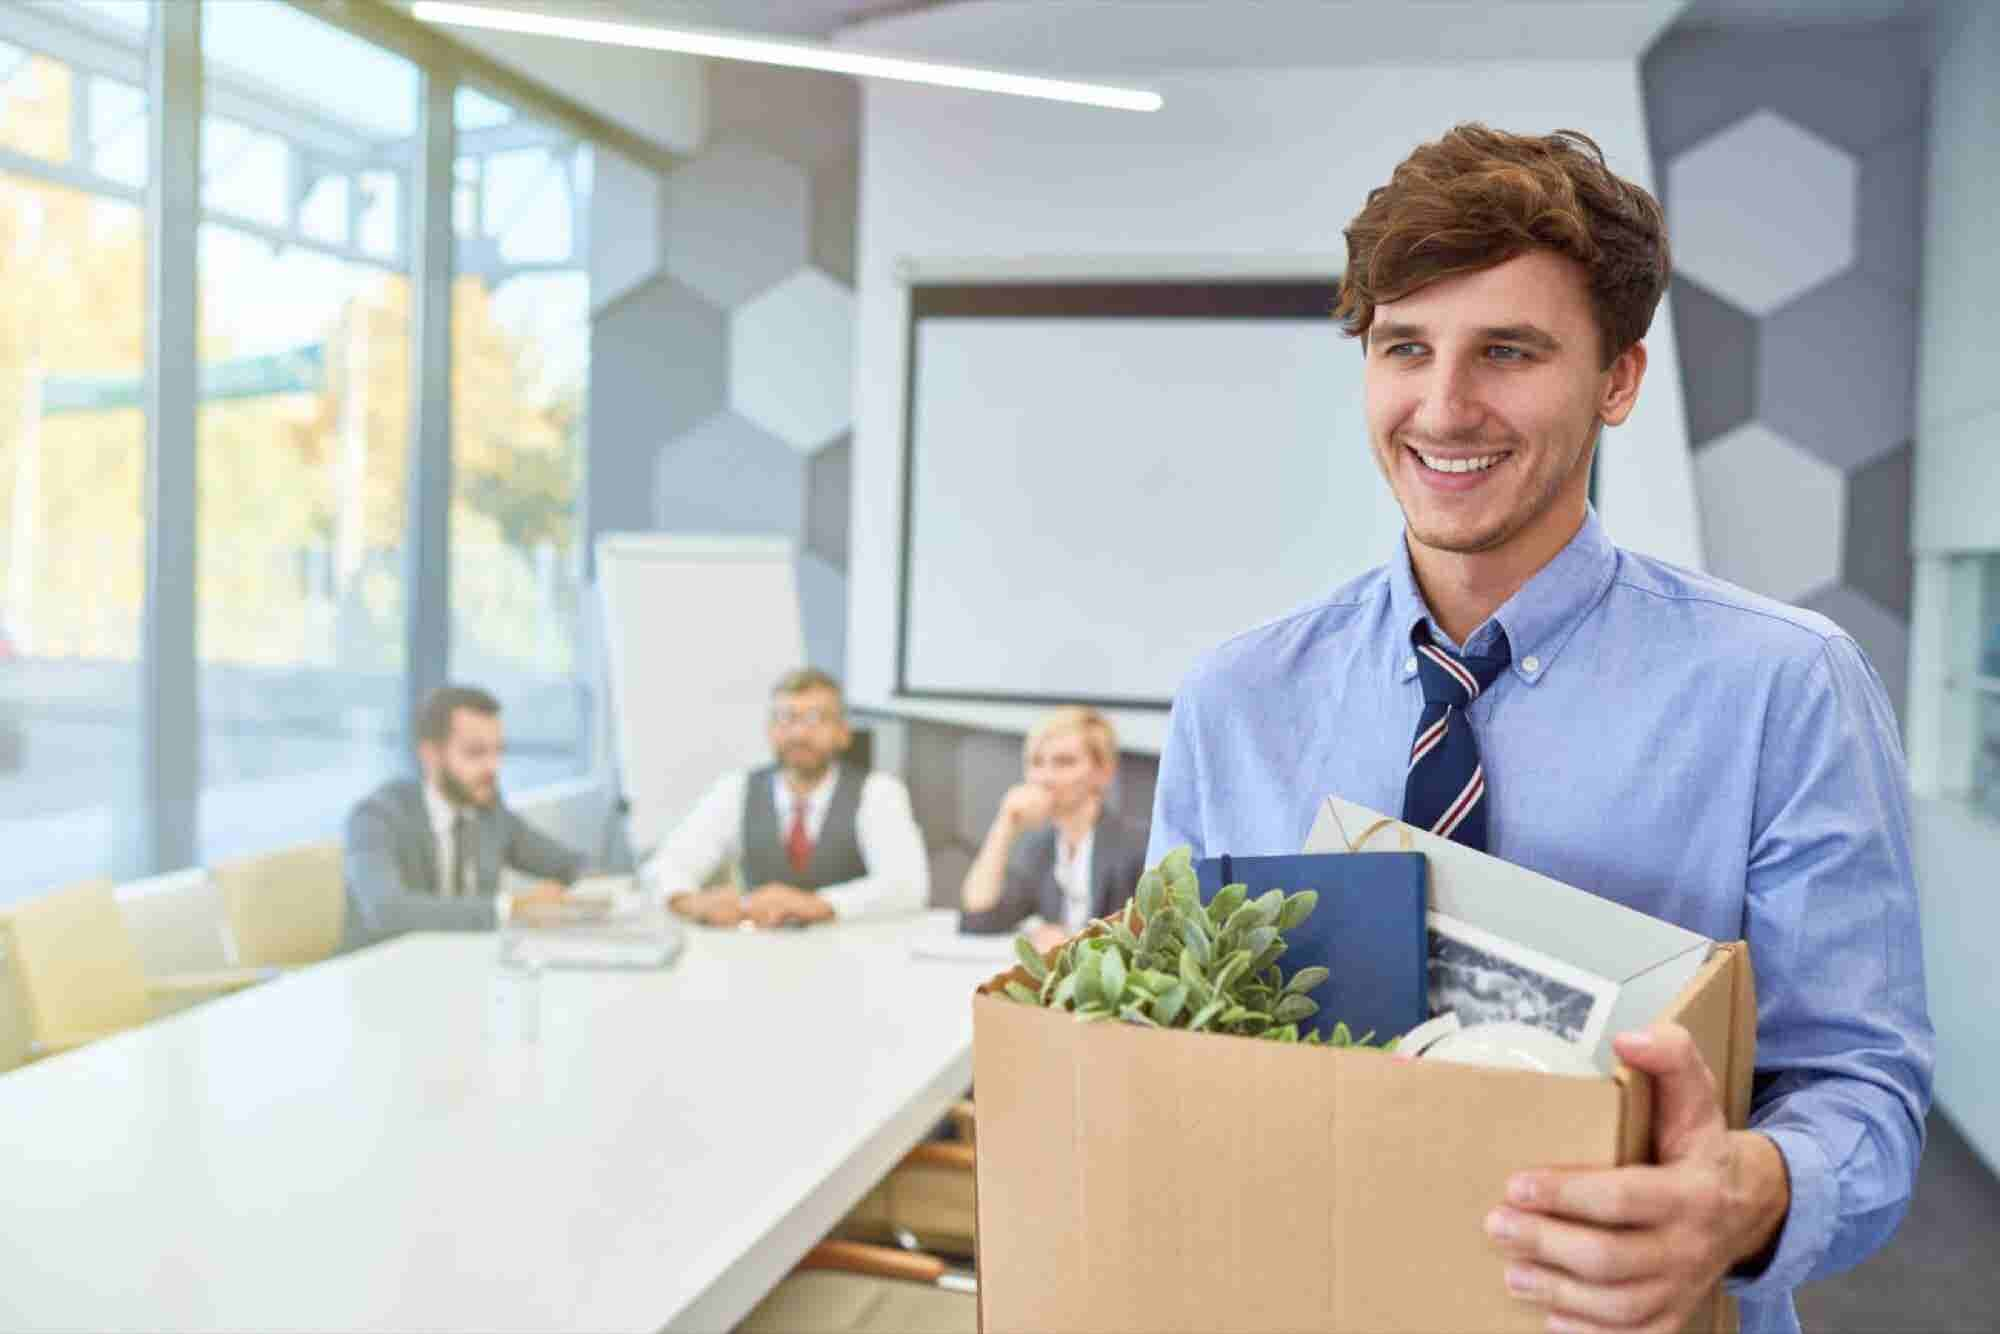 When an Employee Wants to Quit, You're Much Better Off Helping Him or Her Make the Transition